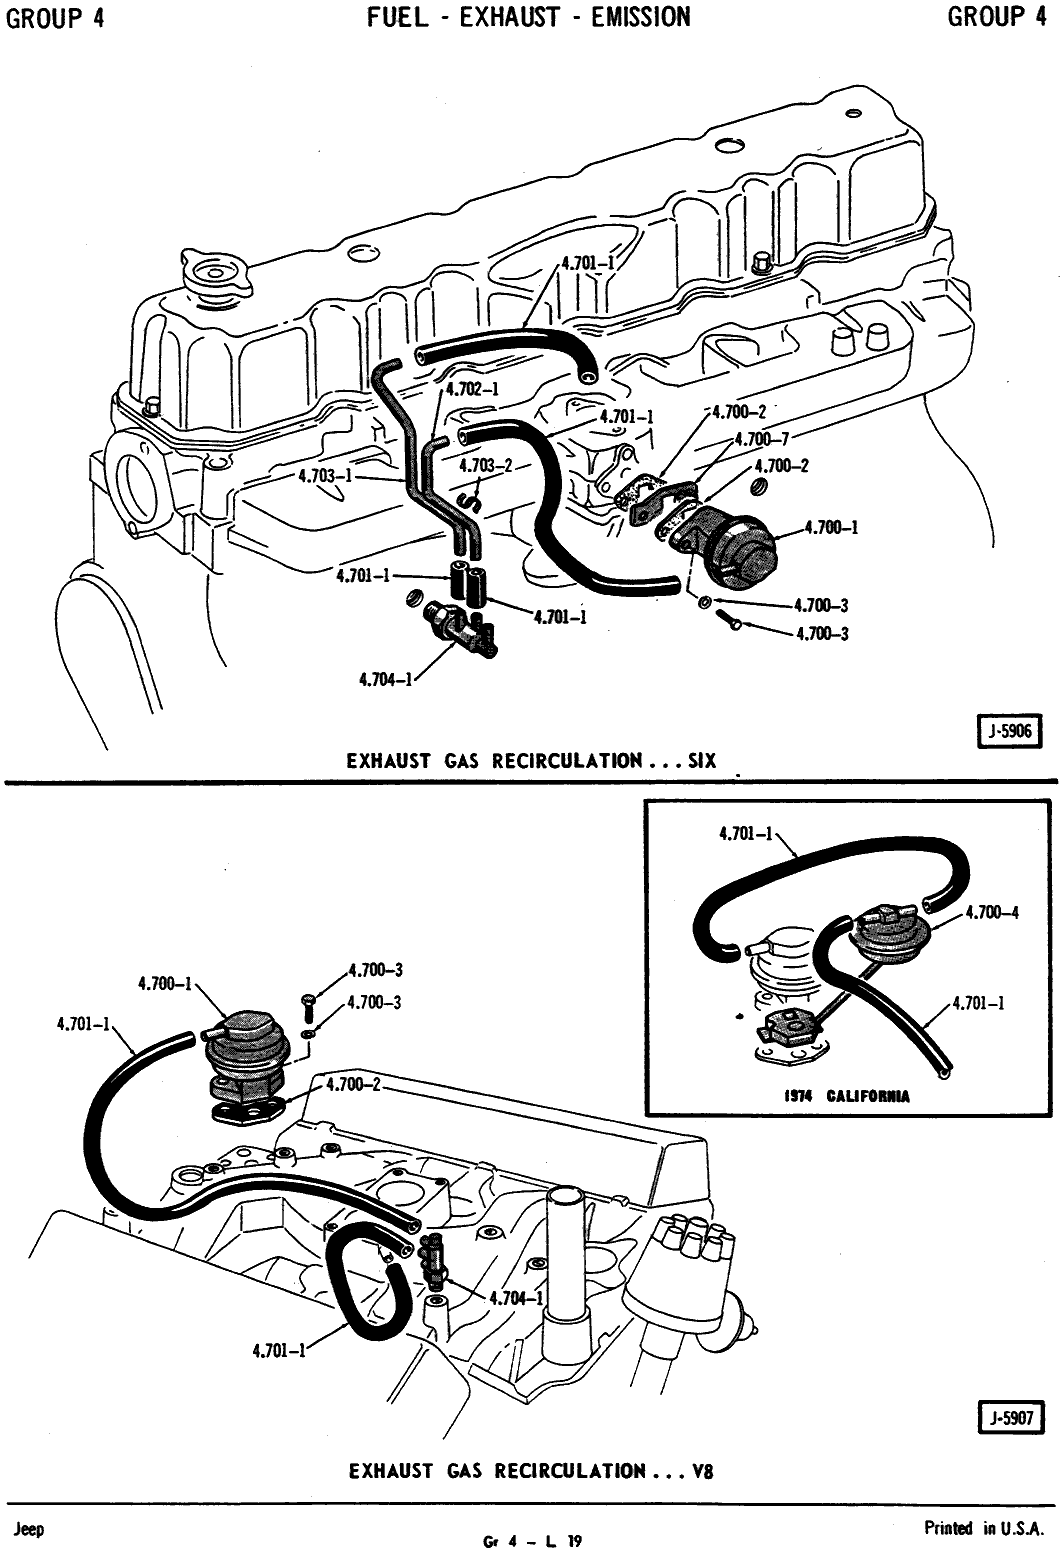 hight resolution of jeep 4 0 vacuum line diagram wiring diagram article 2004 jeep grand cherokee 4 0 vacuum line diagram